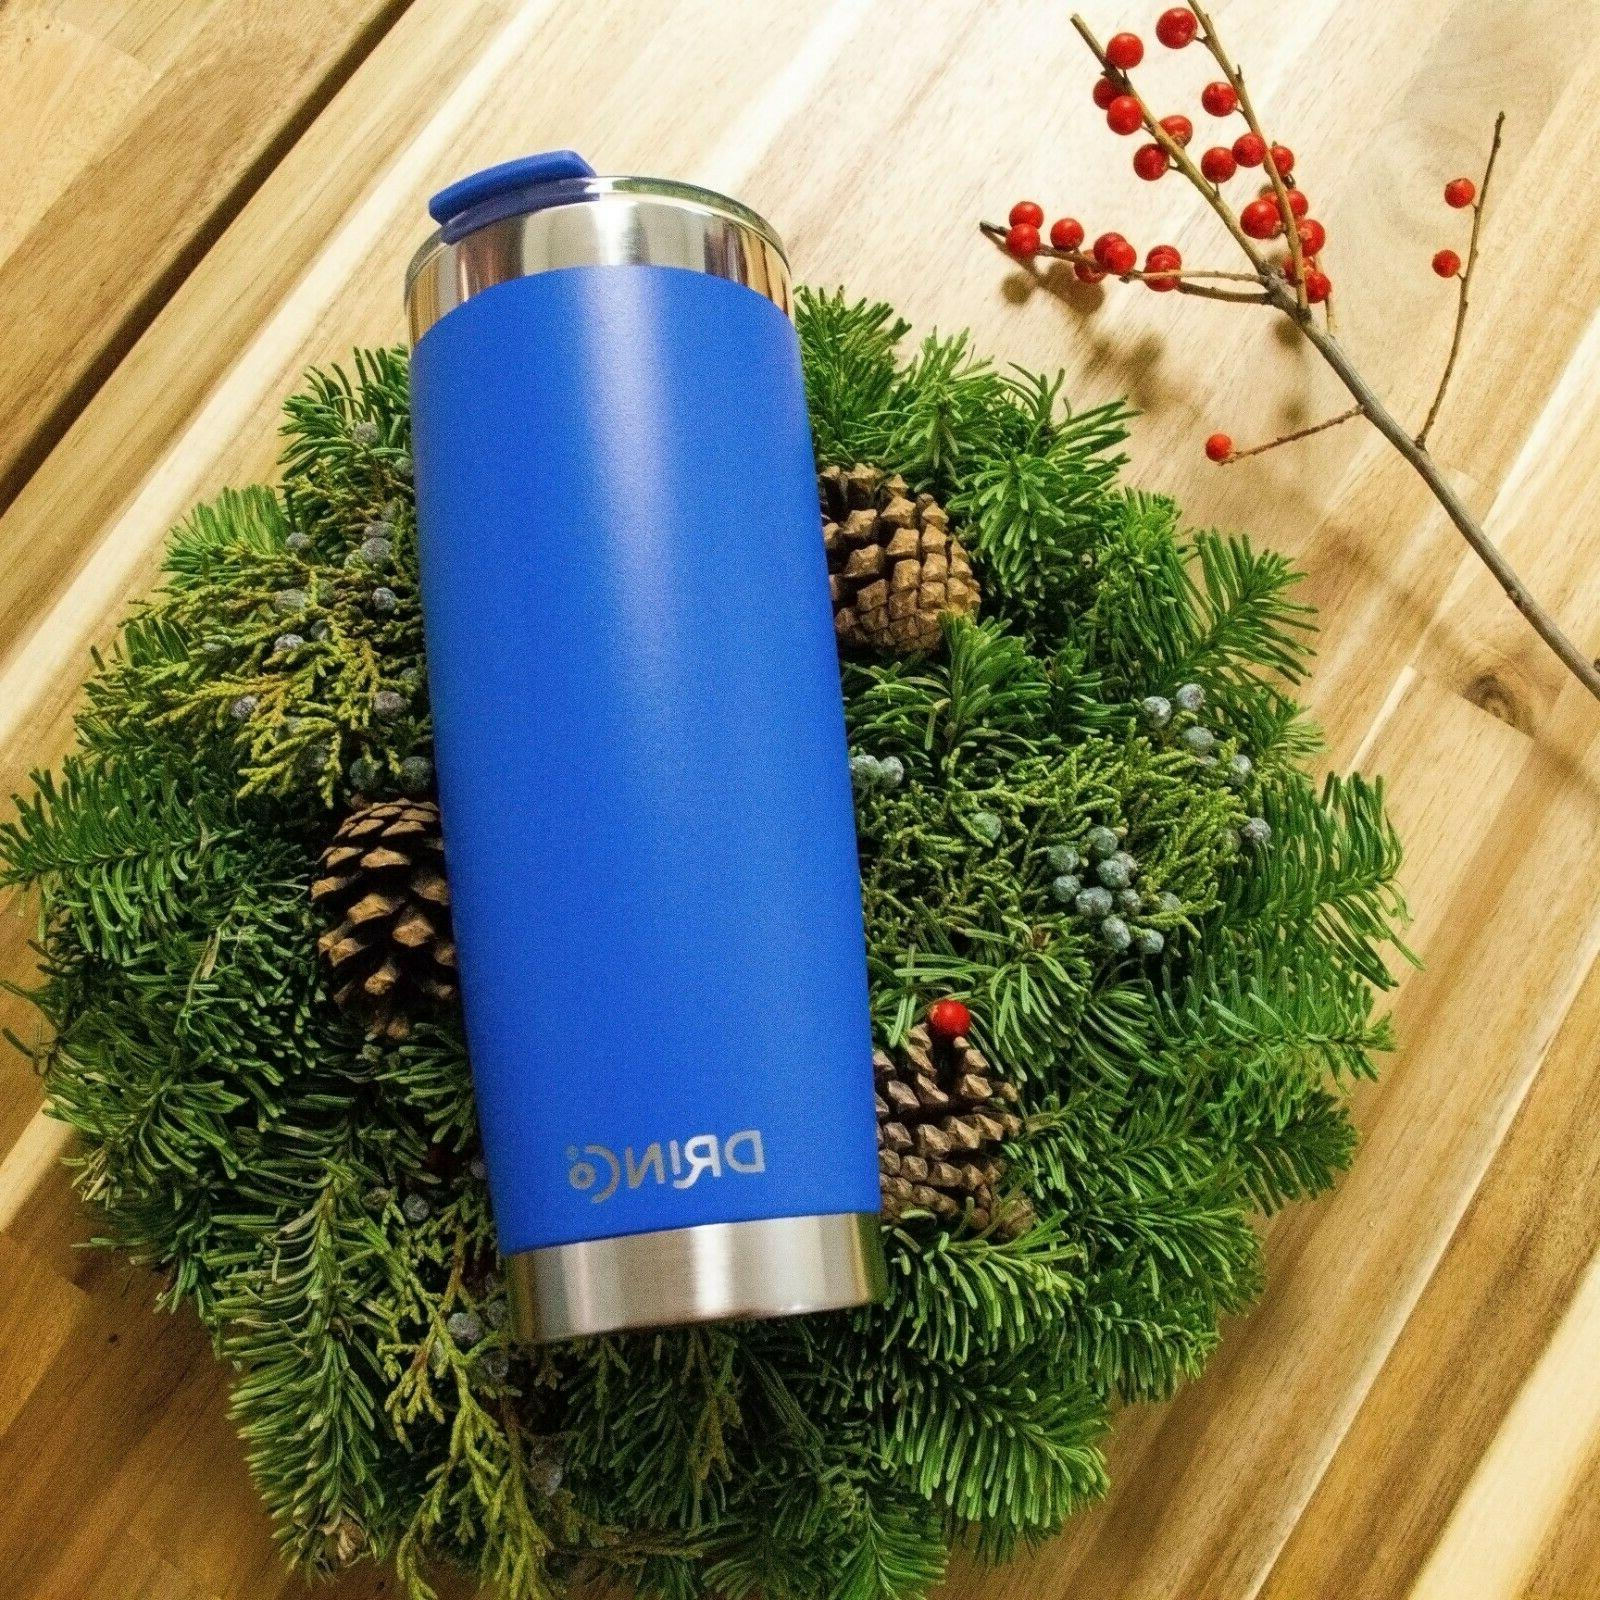 Stainless Steel Tumbler Vacuum Travel Mug with Splash Proof